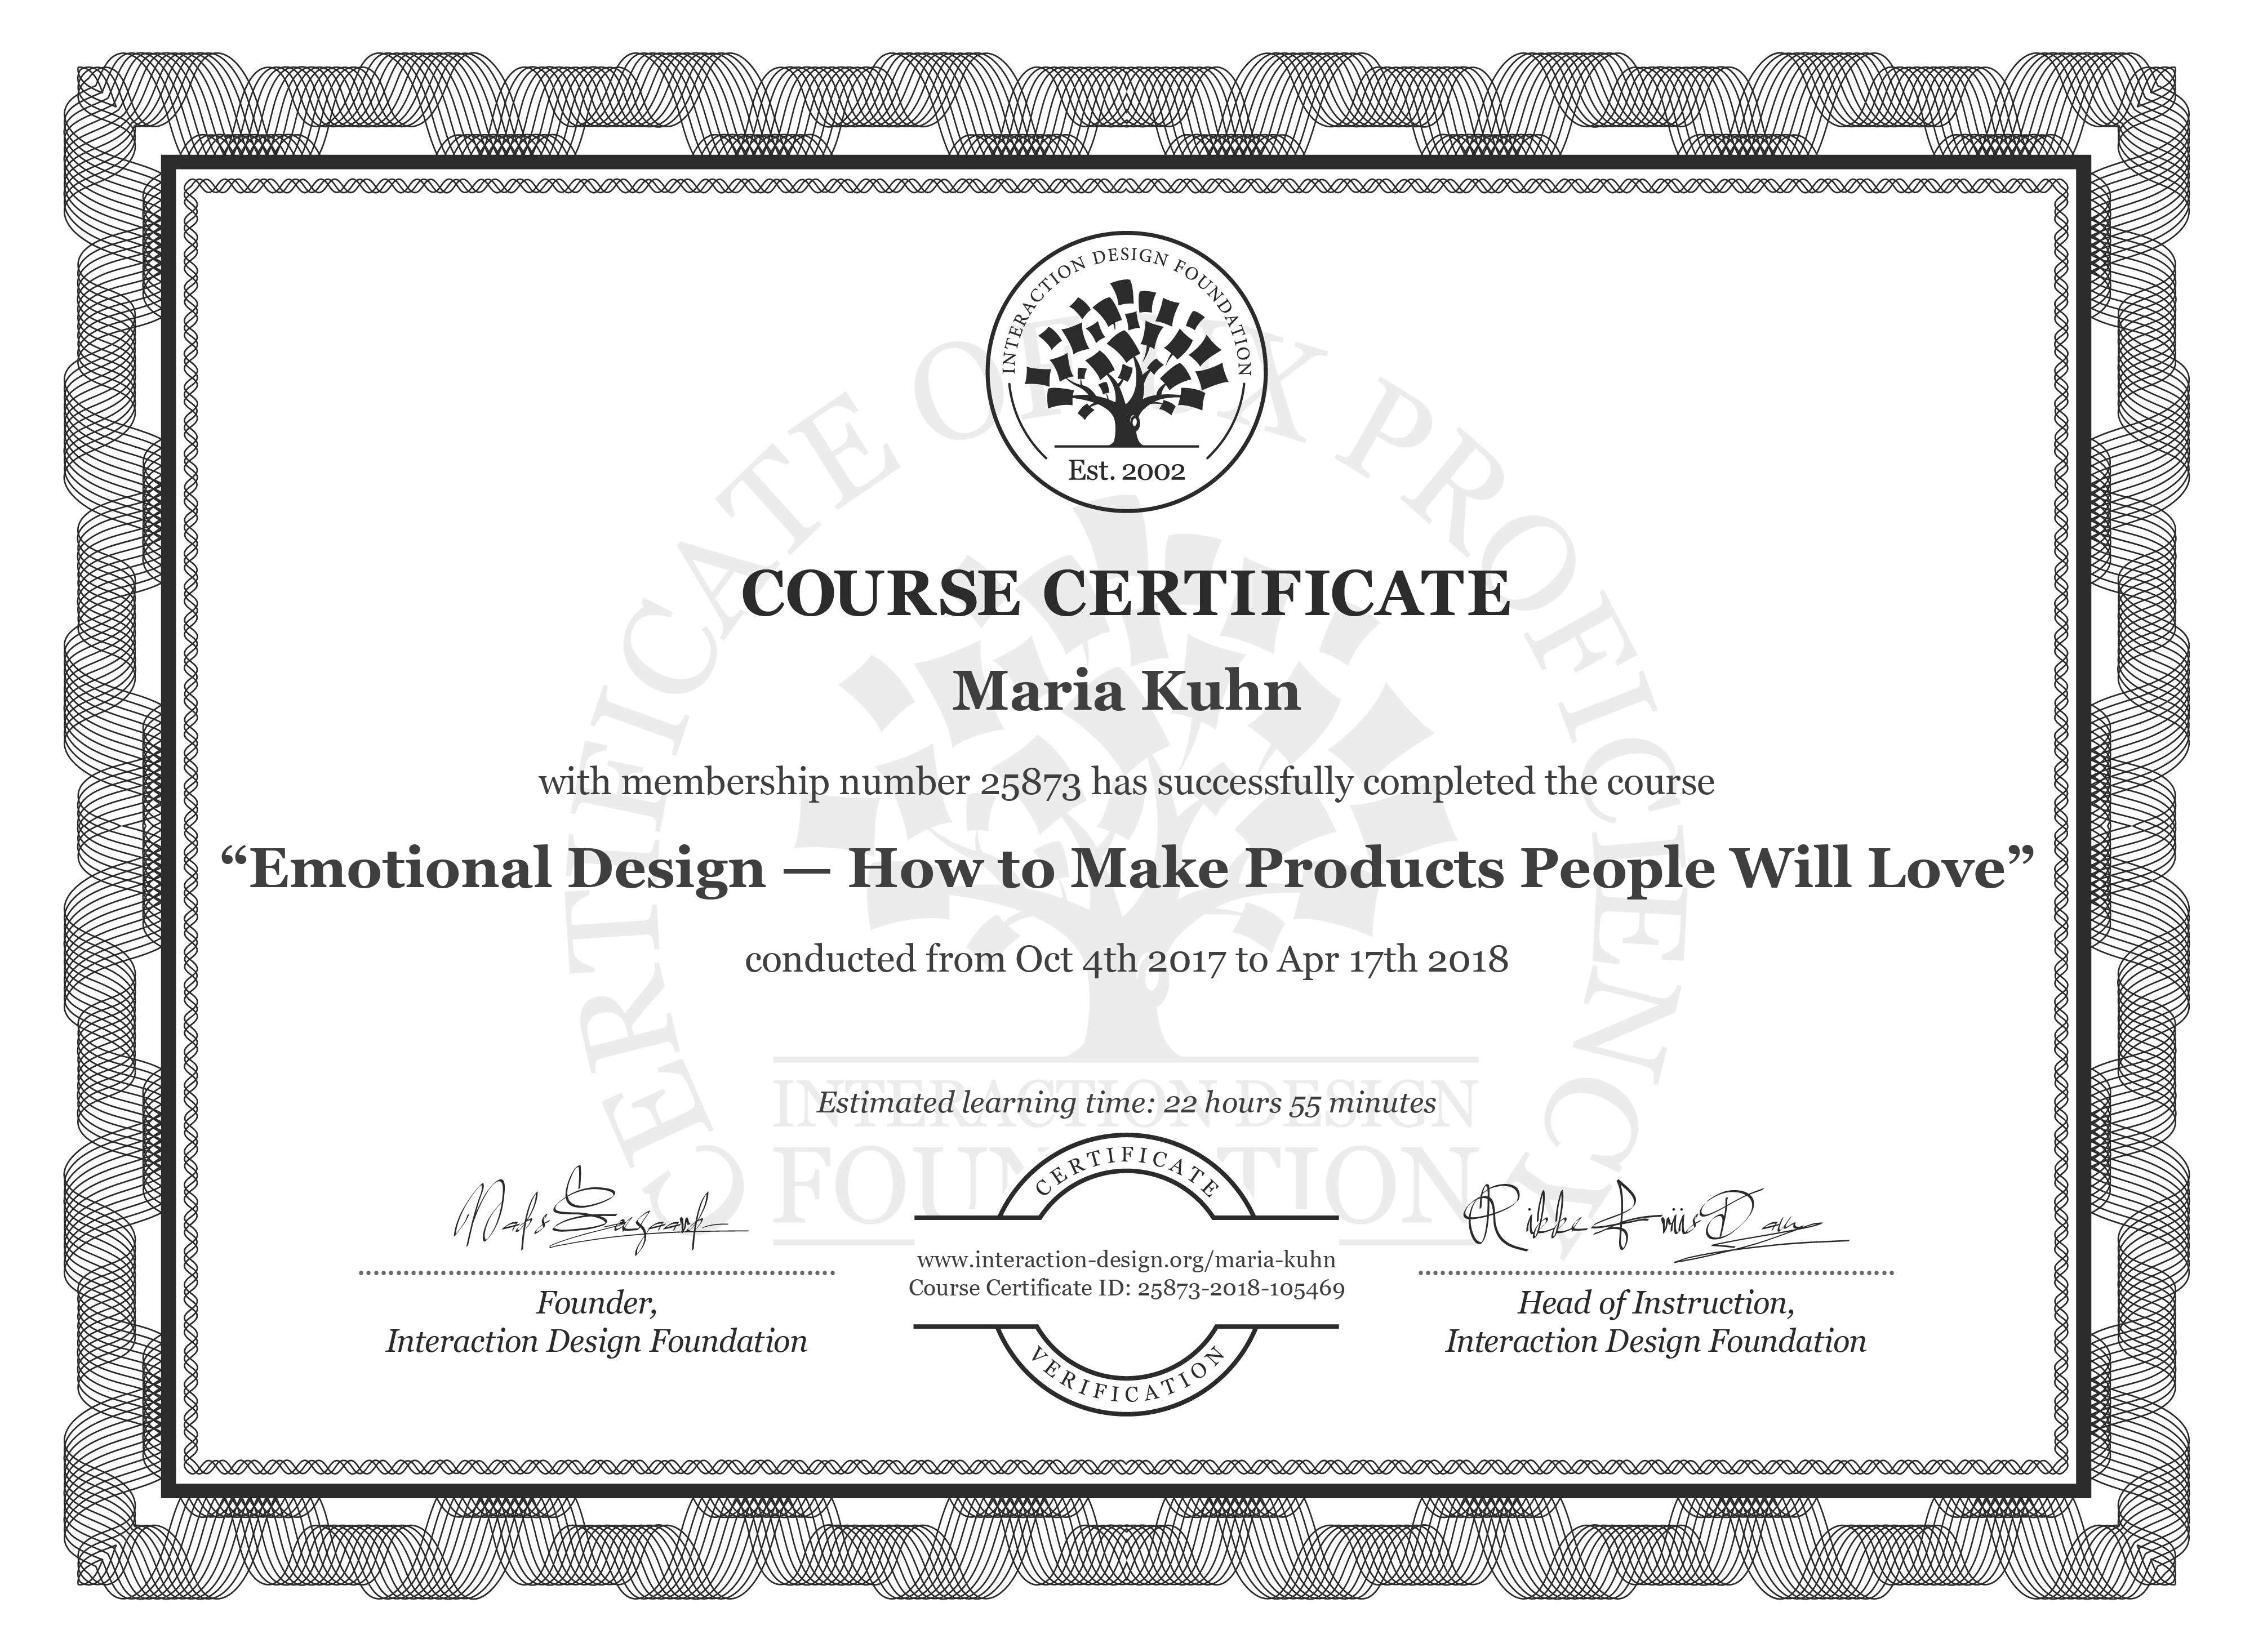 Maria Kuhn: Course Certificate - Emotional Design — How to Make Products People Will Love